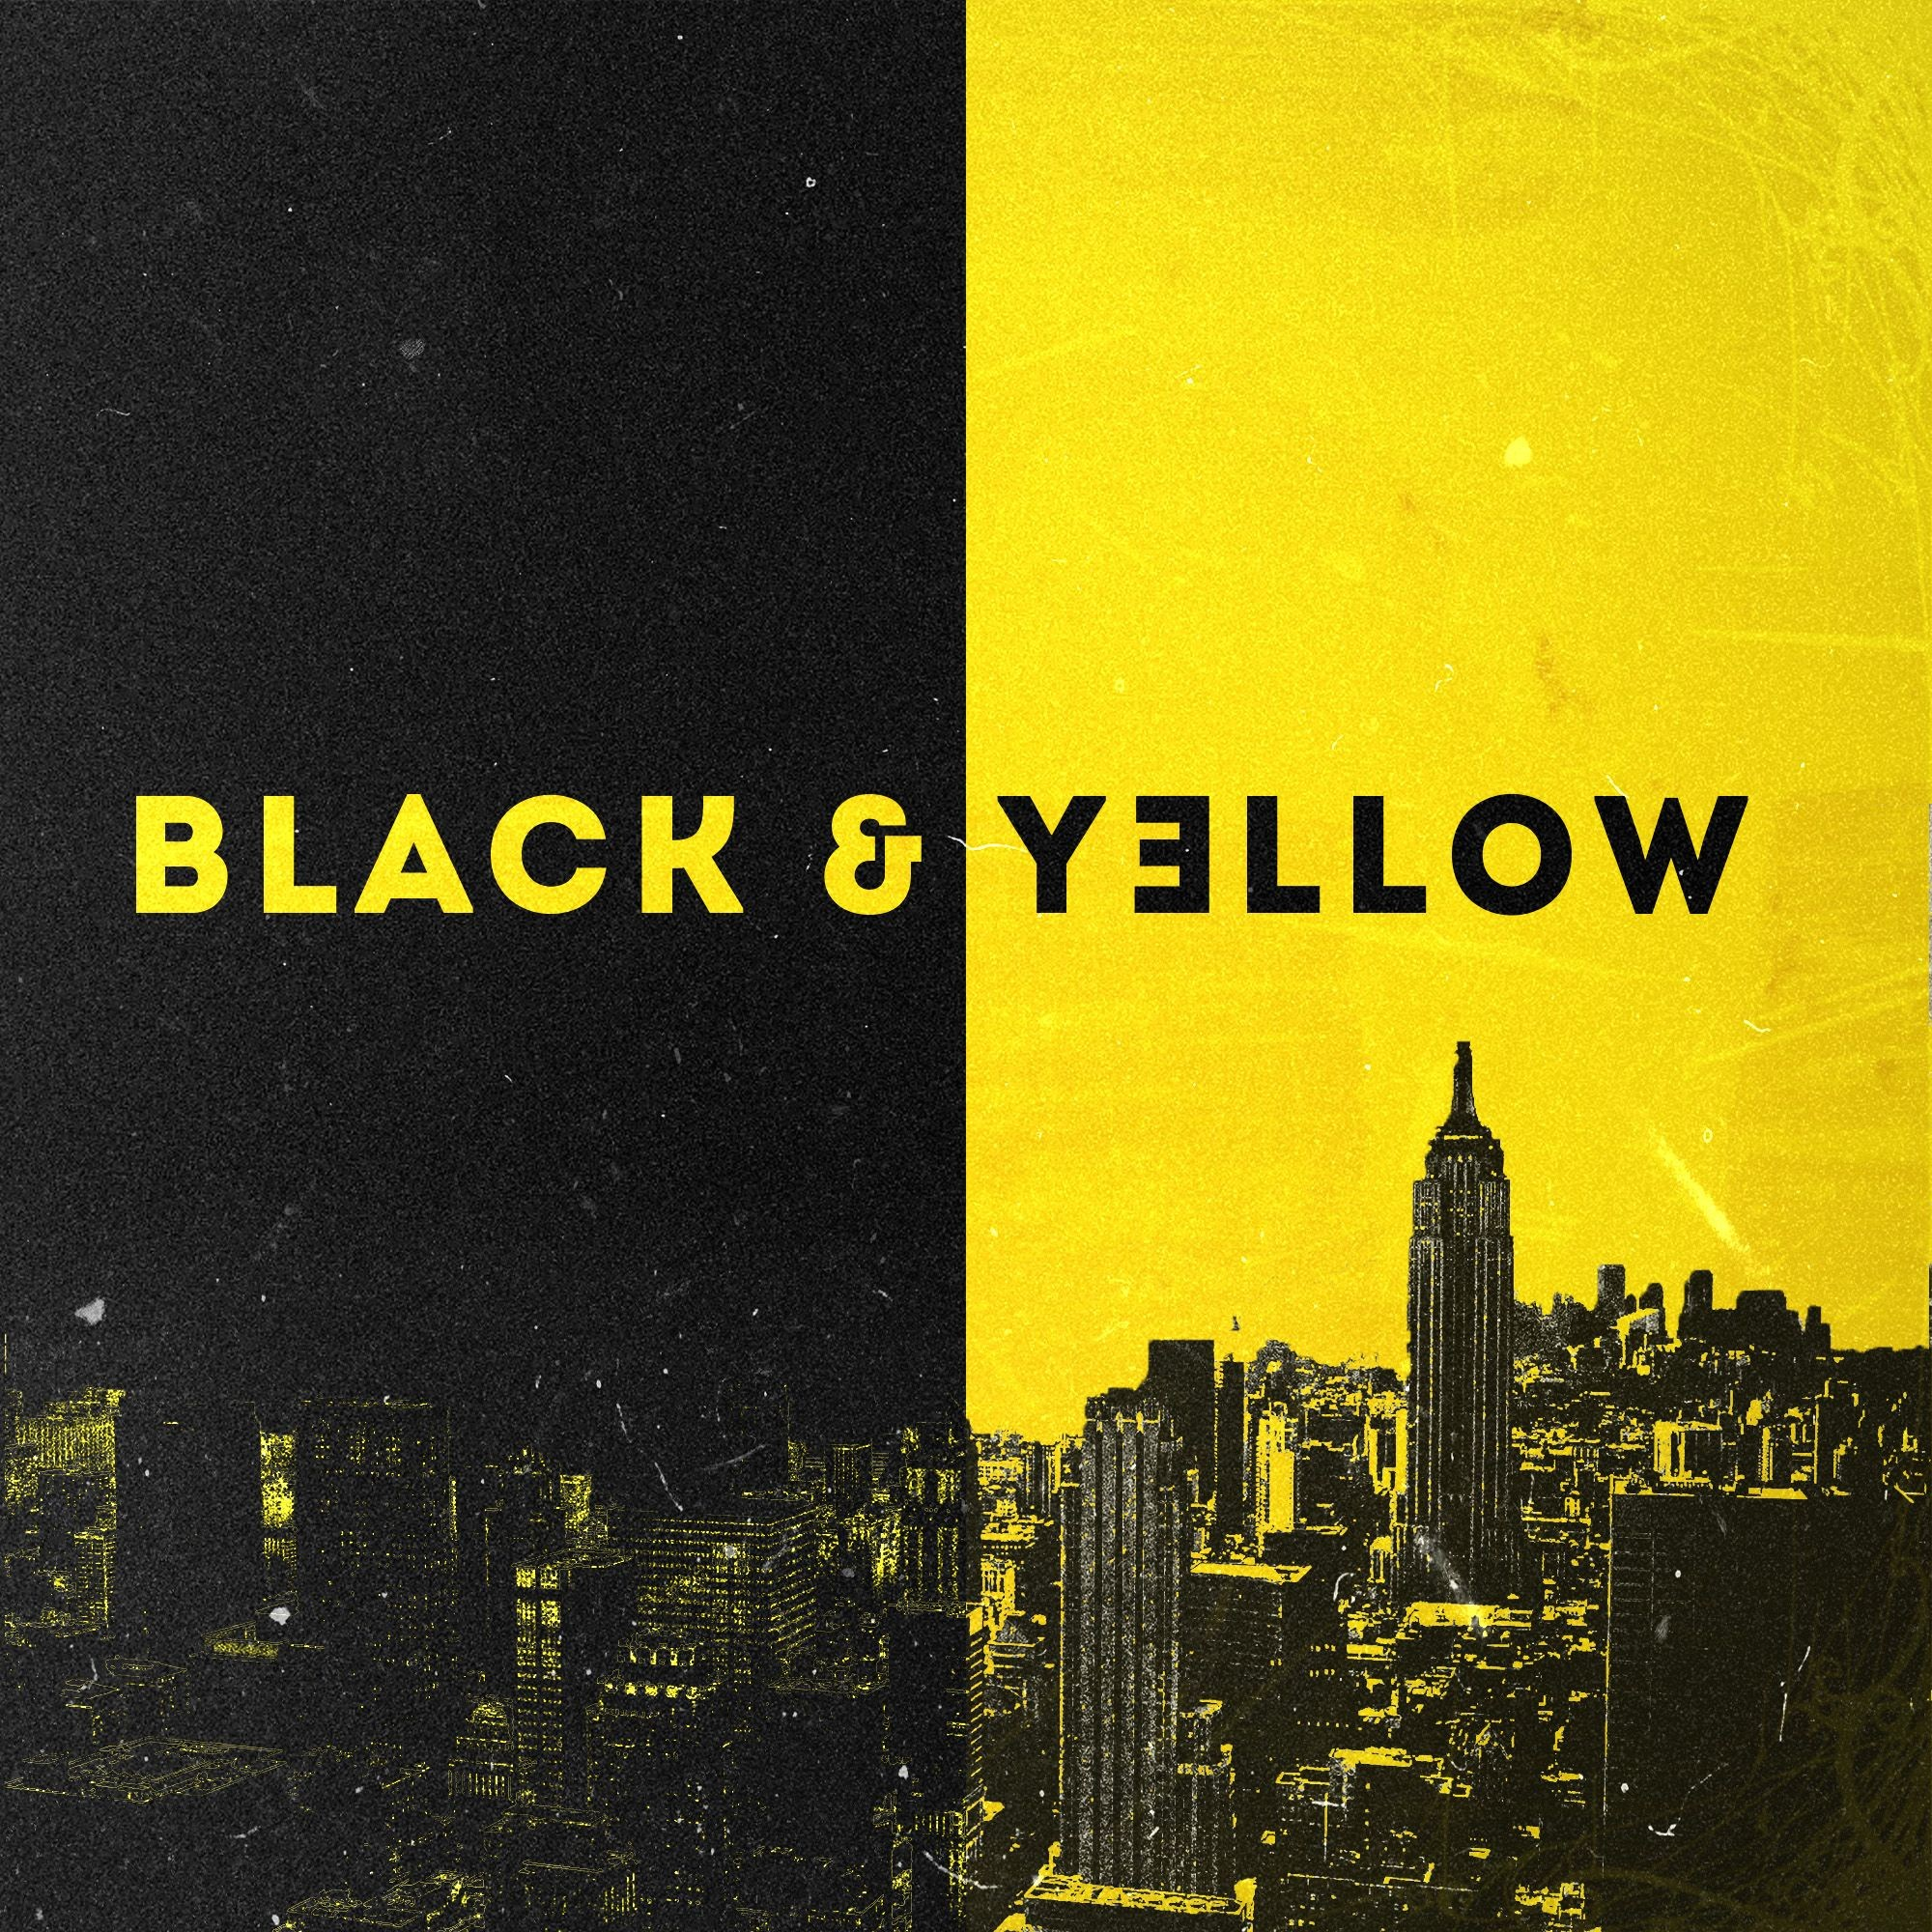 2000x2000 black and yellow wallpaper - Google Search